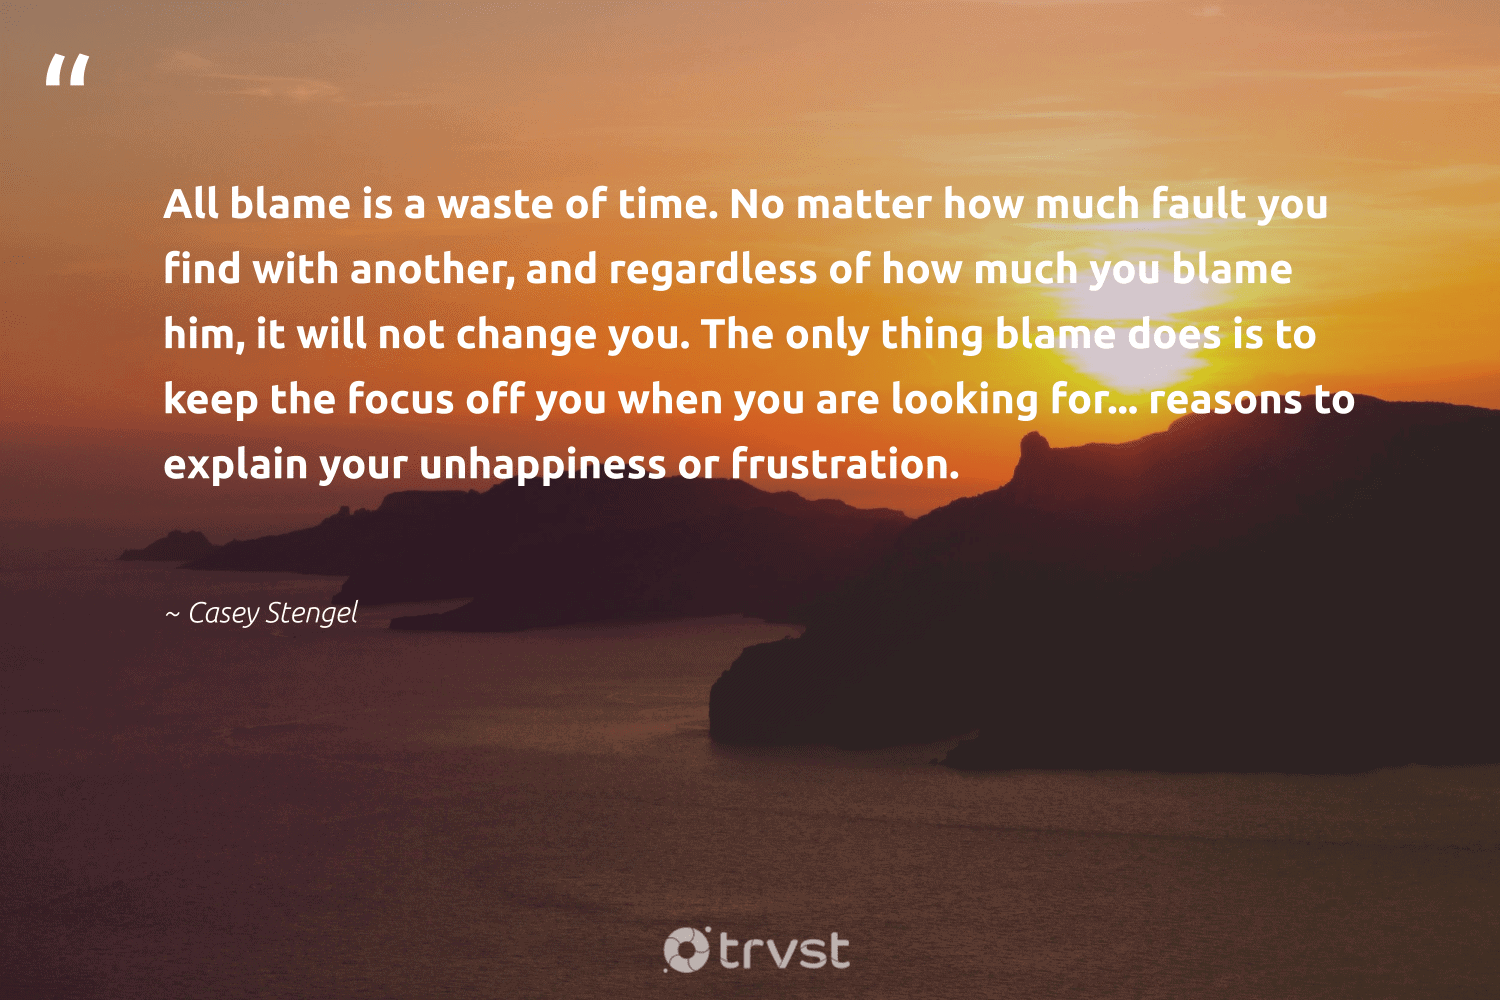 """""""All blame is a waste of time. No matter how much fault you find with another, and regardless of how much you blame him, it will not change you. The only thing blame does is to keep the focus off you when you are looking for... reasons to explain your unhappiness or frustration.""""  - Casey Stengel #trvst #quotes #waste #focus #motivation #changemakers #futureofwork #socialimpact #productivity #togetherwecan #begreat #dotherightthing"""